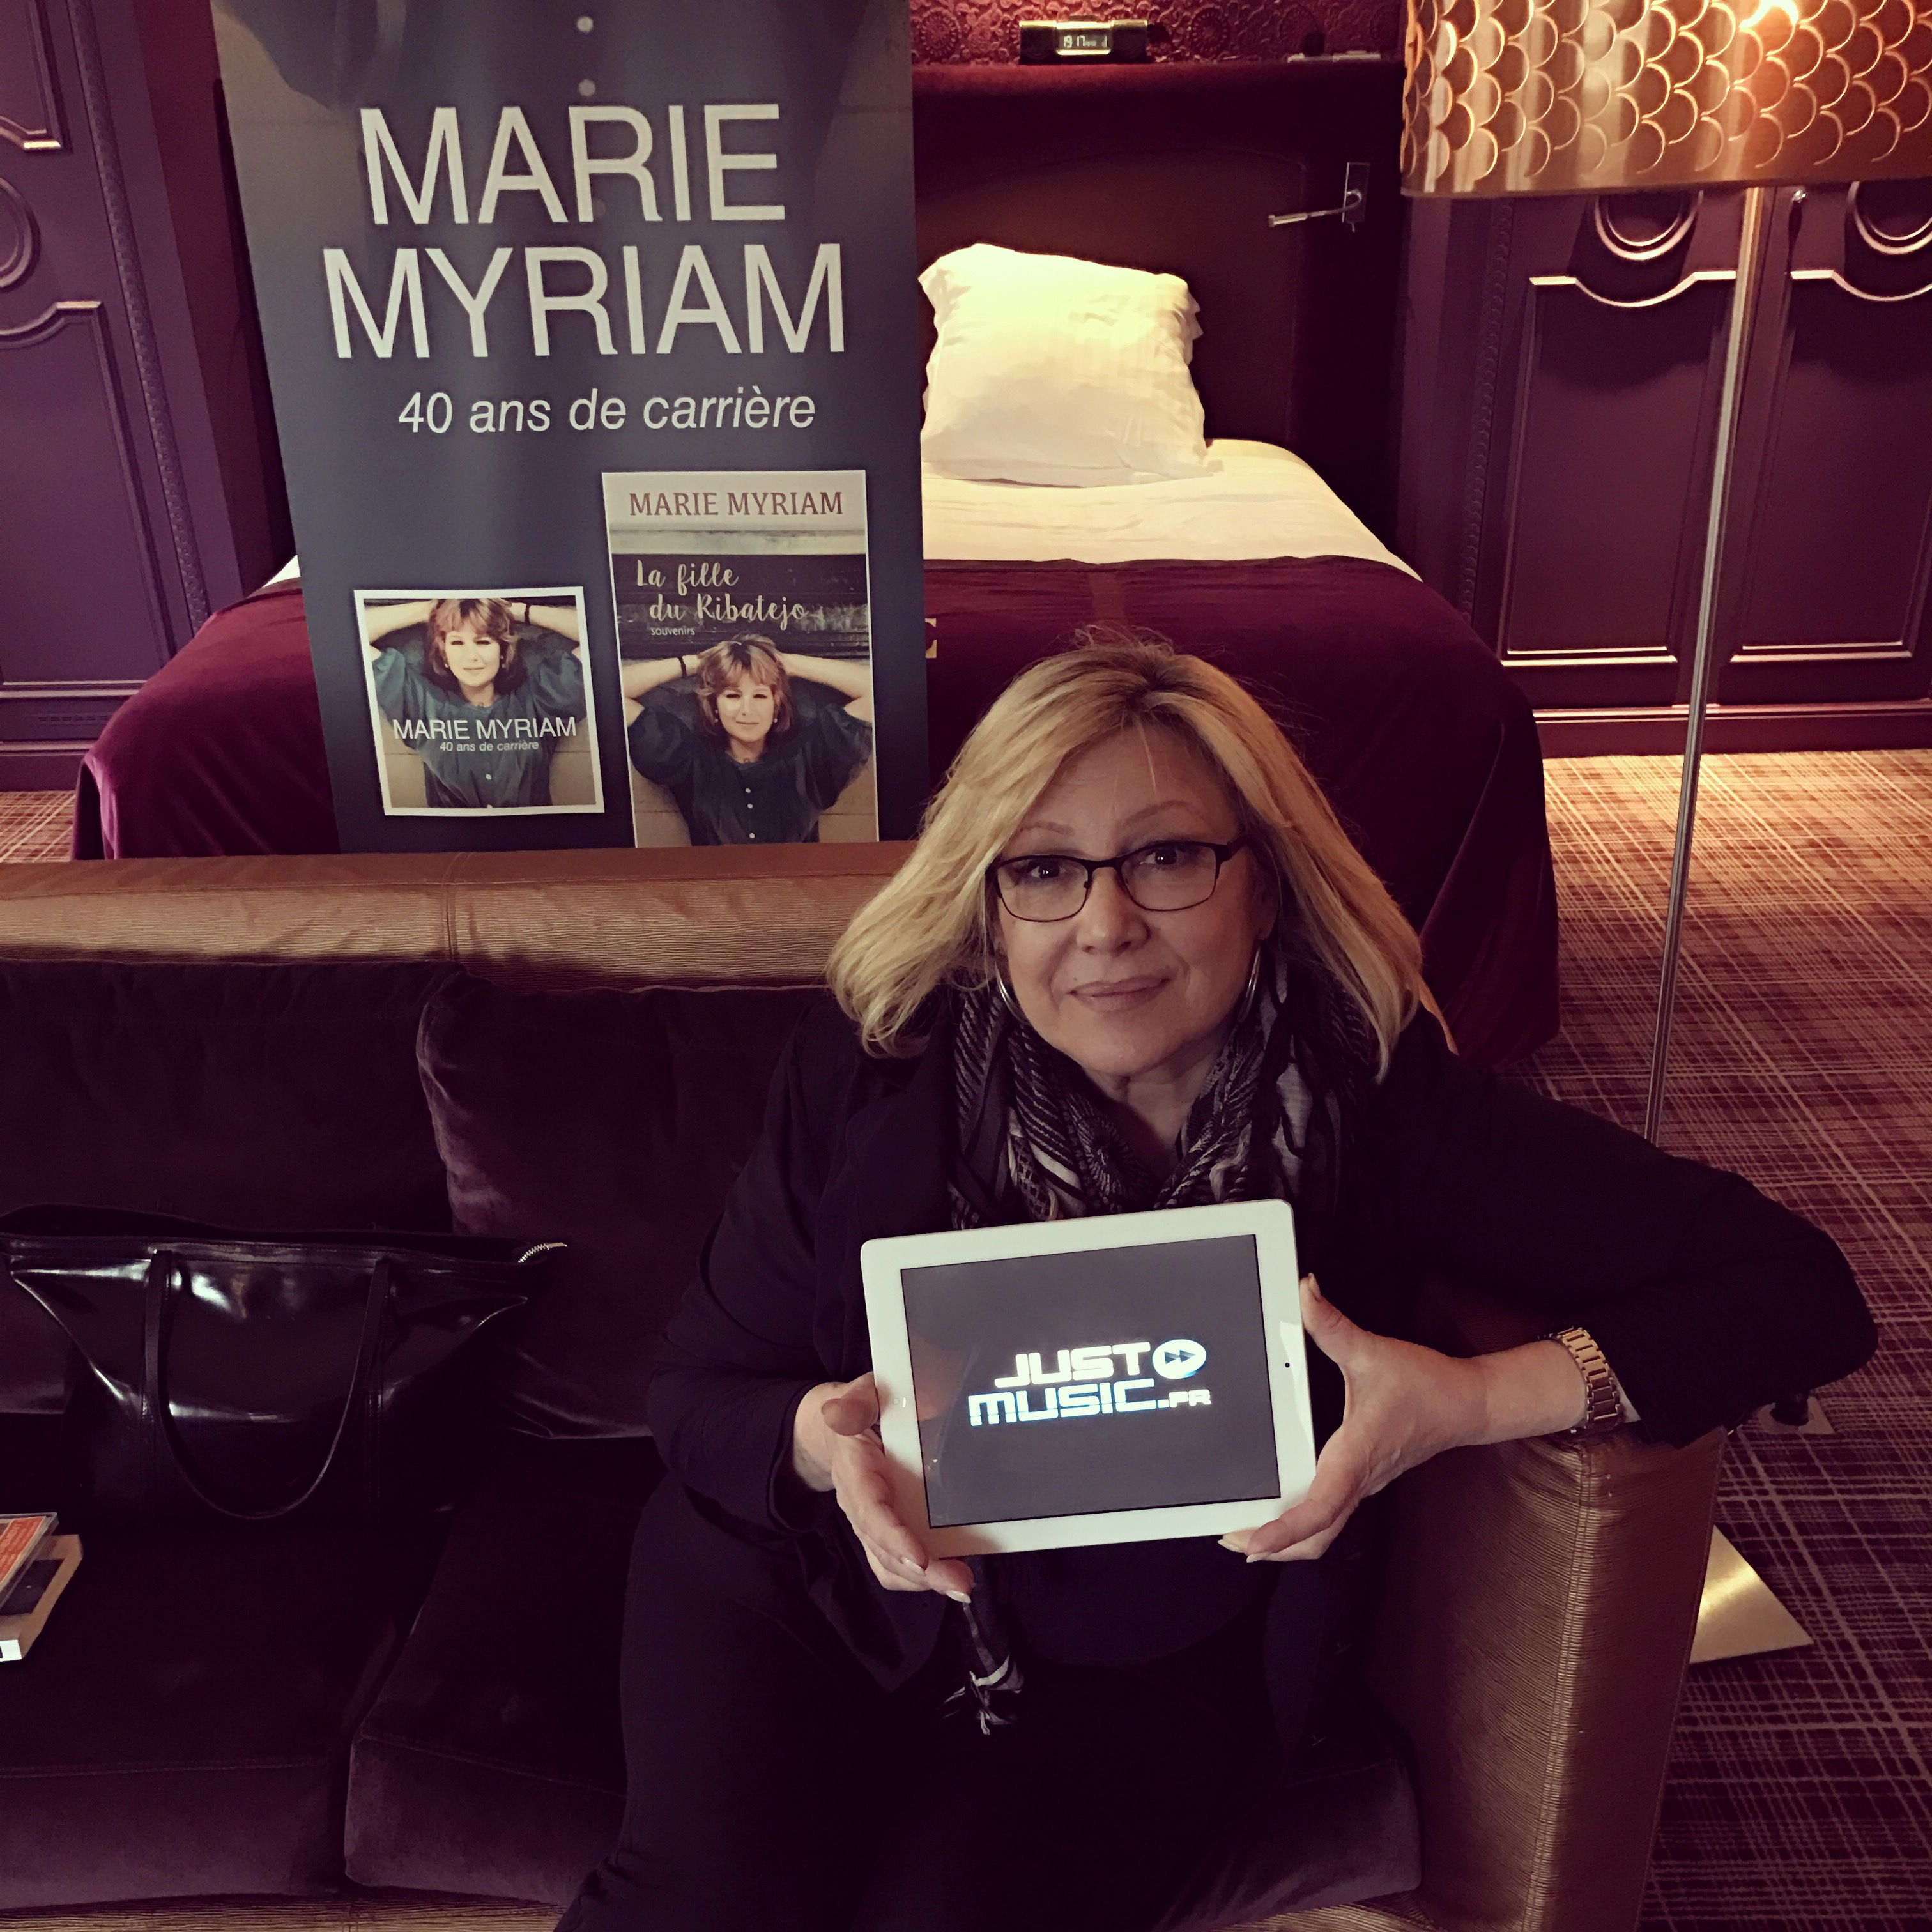 Marie Myriam JustMusic.fr Interview